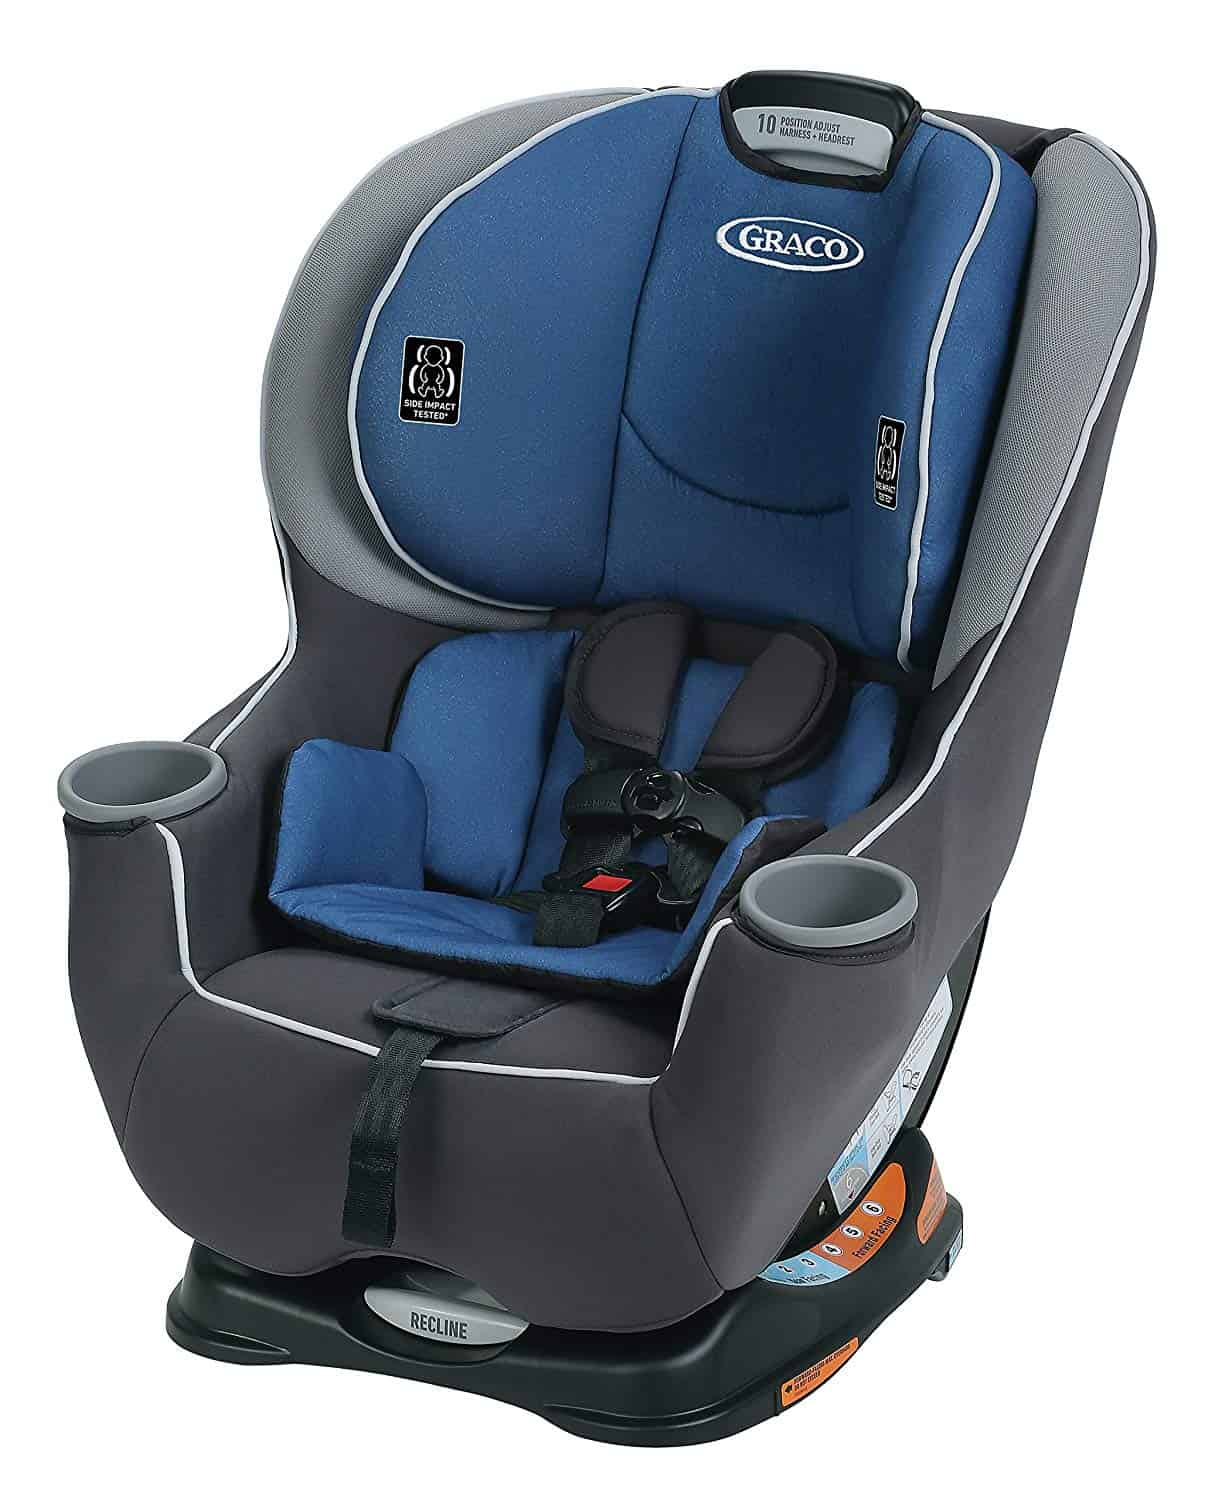 The Graco Sequel 65 Car Seat Review - Every Car Seat Has A Mom